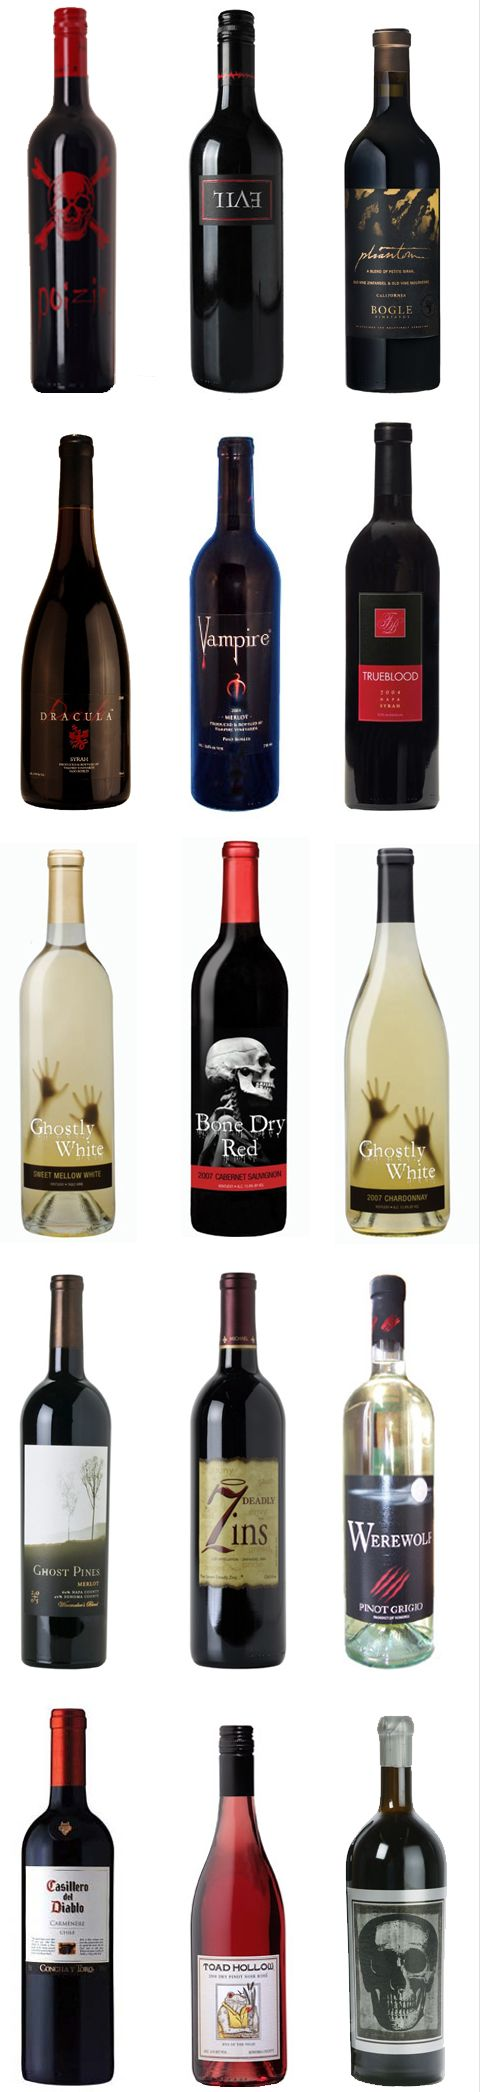 7 Deadly Sins Wine Glasses Best 25 Names Of Wines Ideas On Pinterest Barefoot Wine Yellow